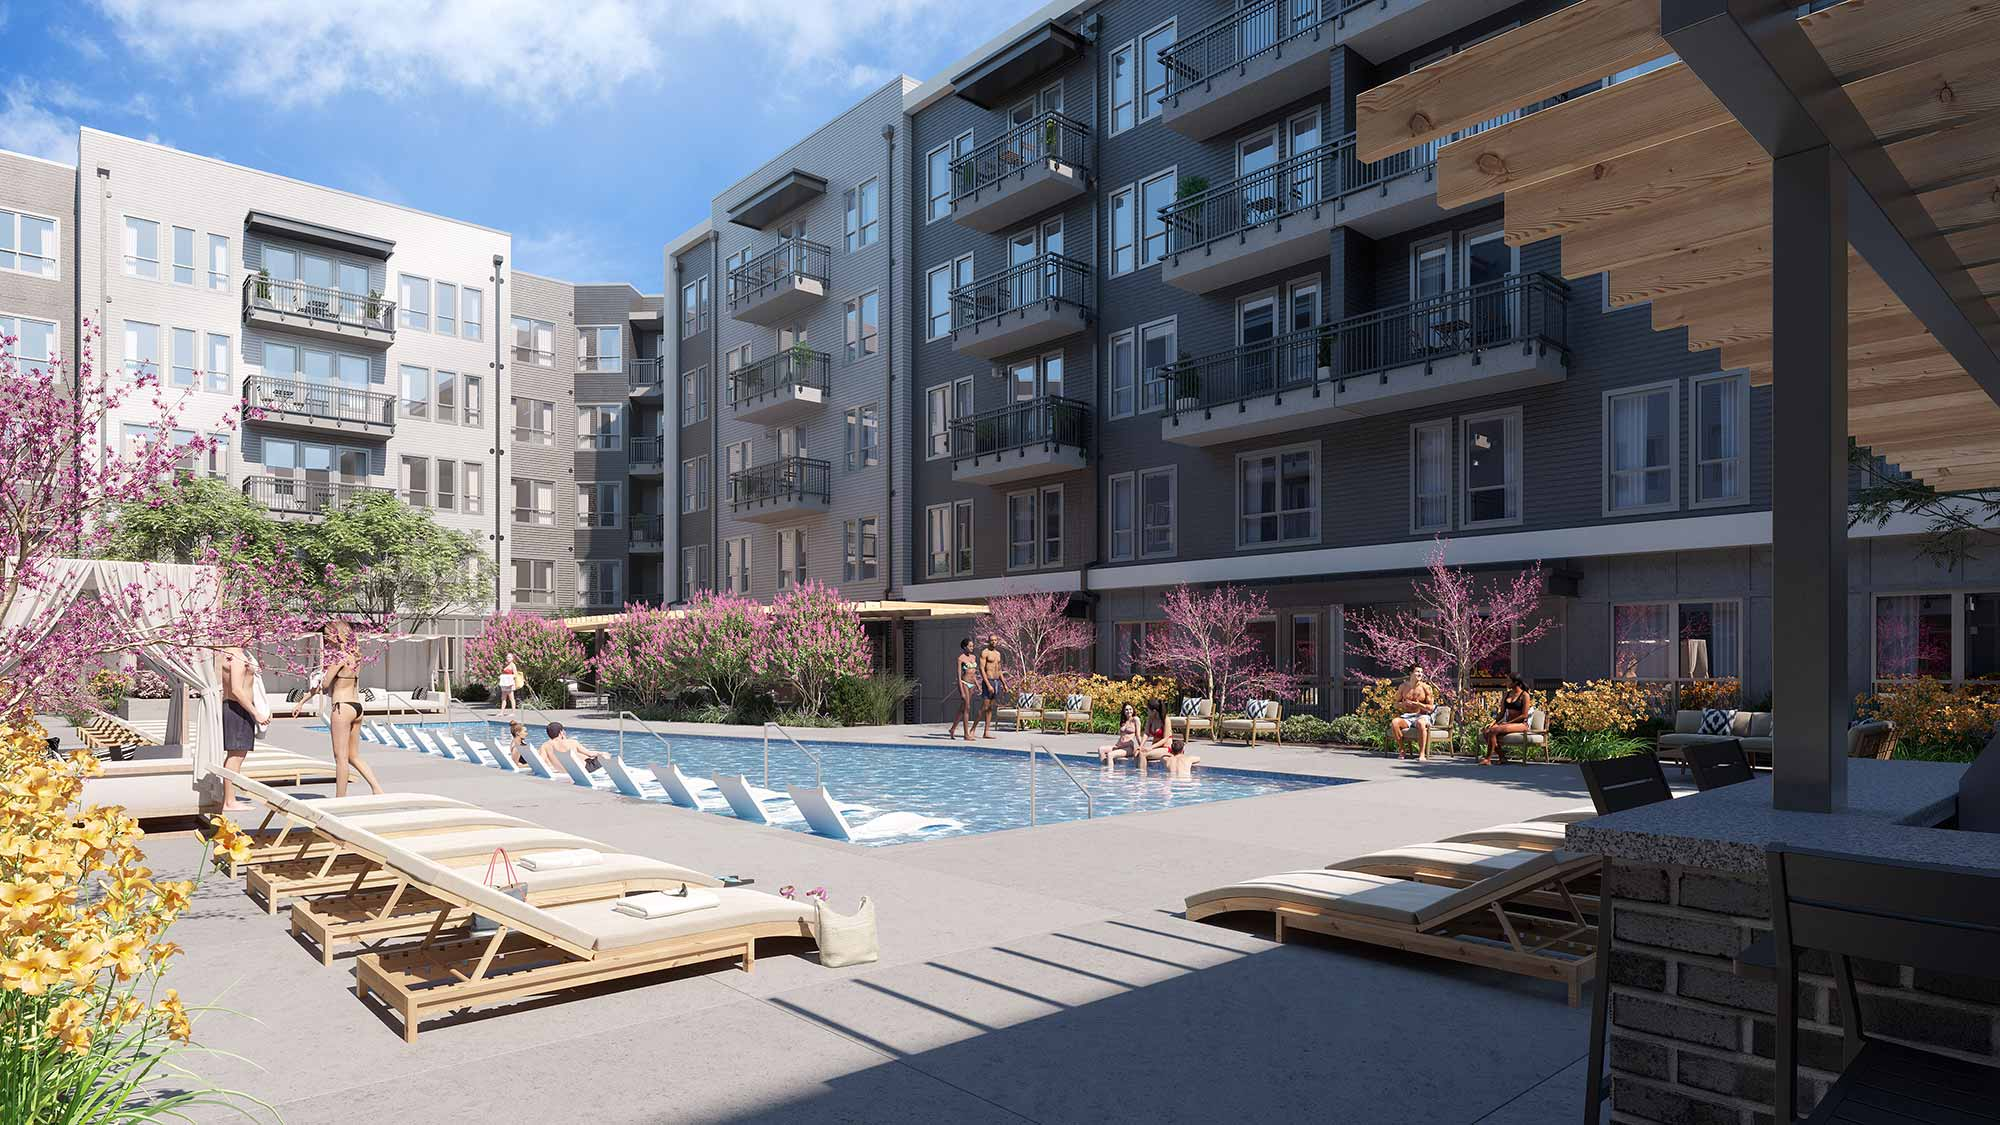 Rendering of the pool and furniture at the Residences at Classen Curve